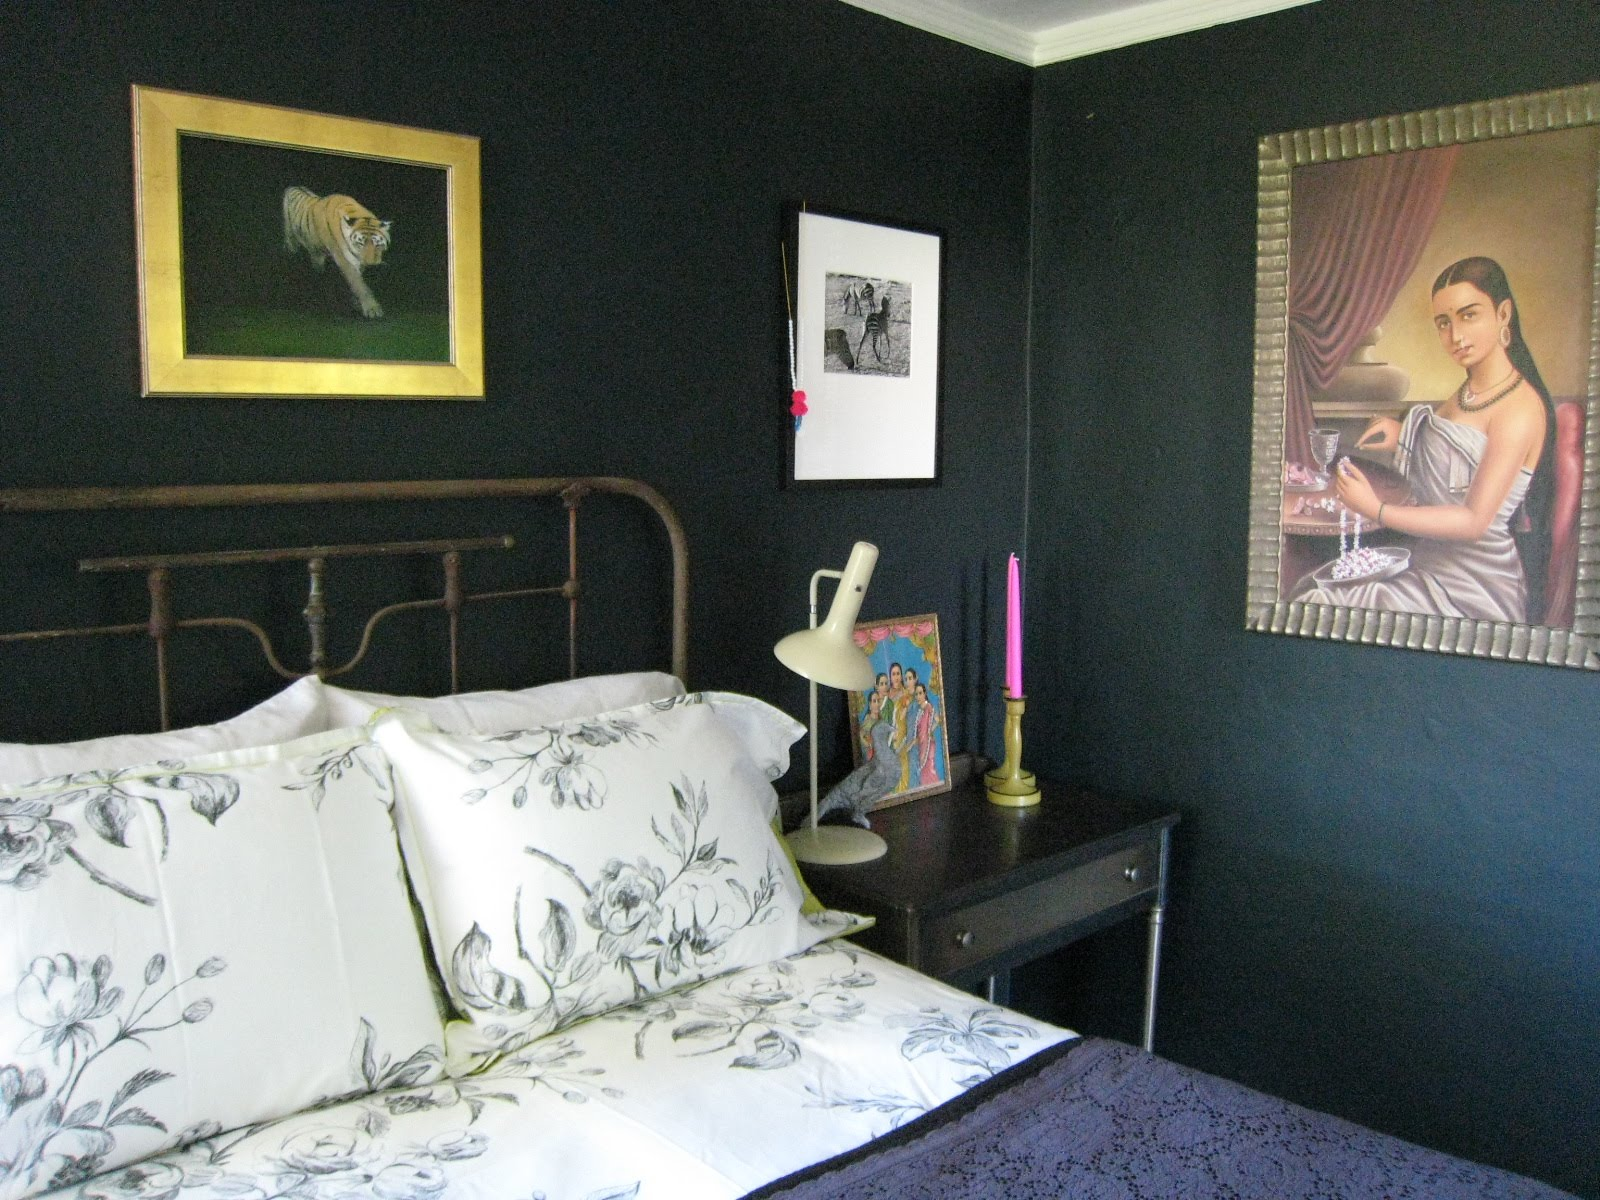 Black Blue Farrow and Ball Paint 1600 x 1200